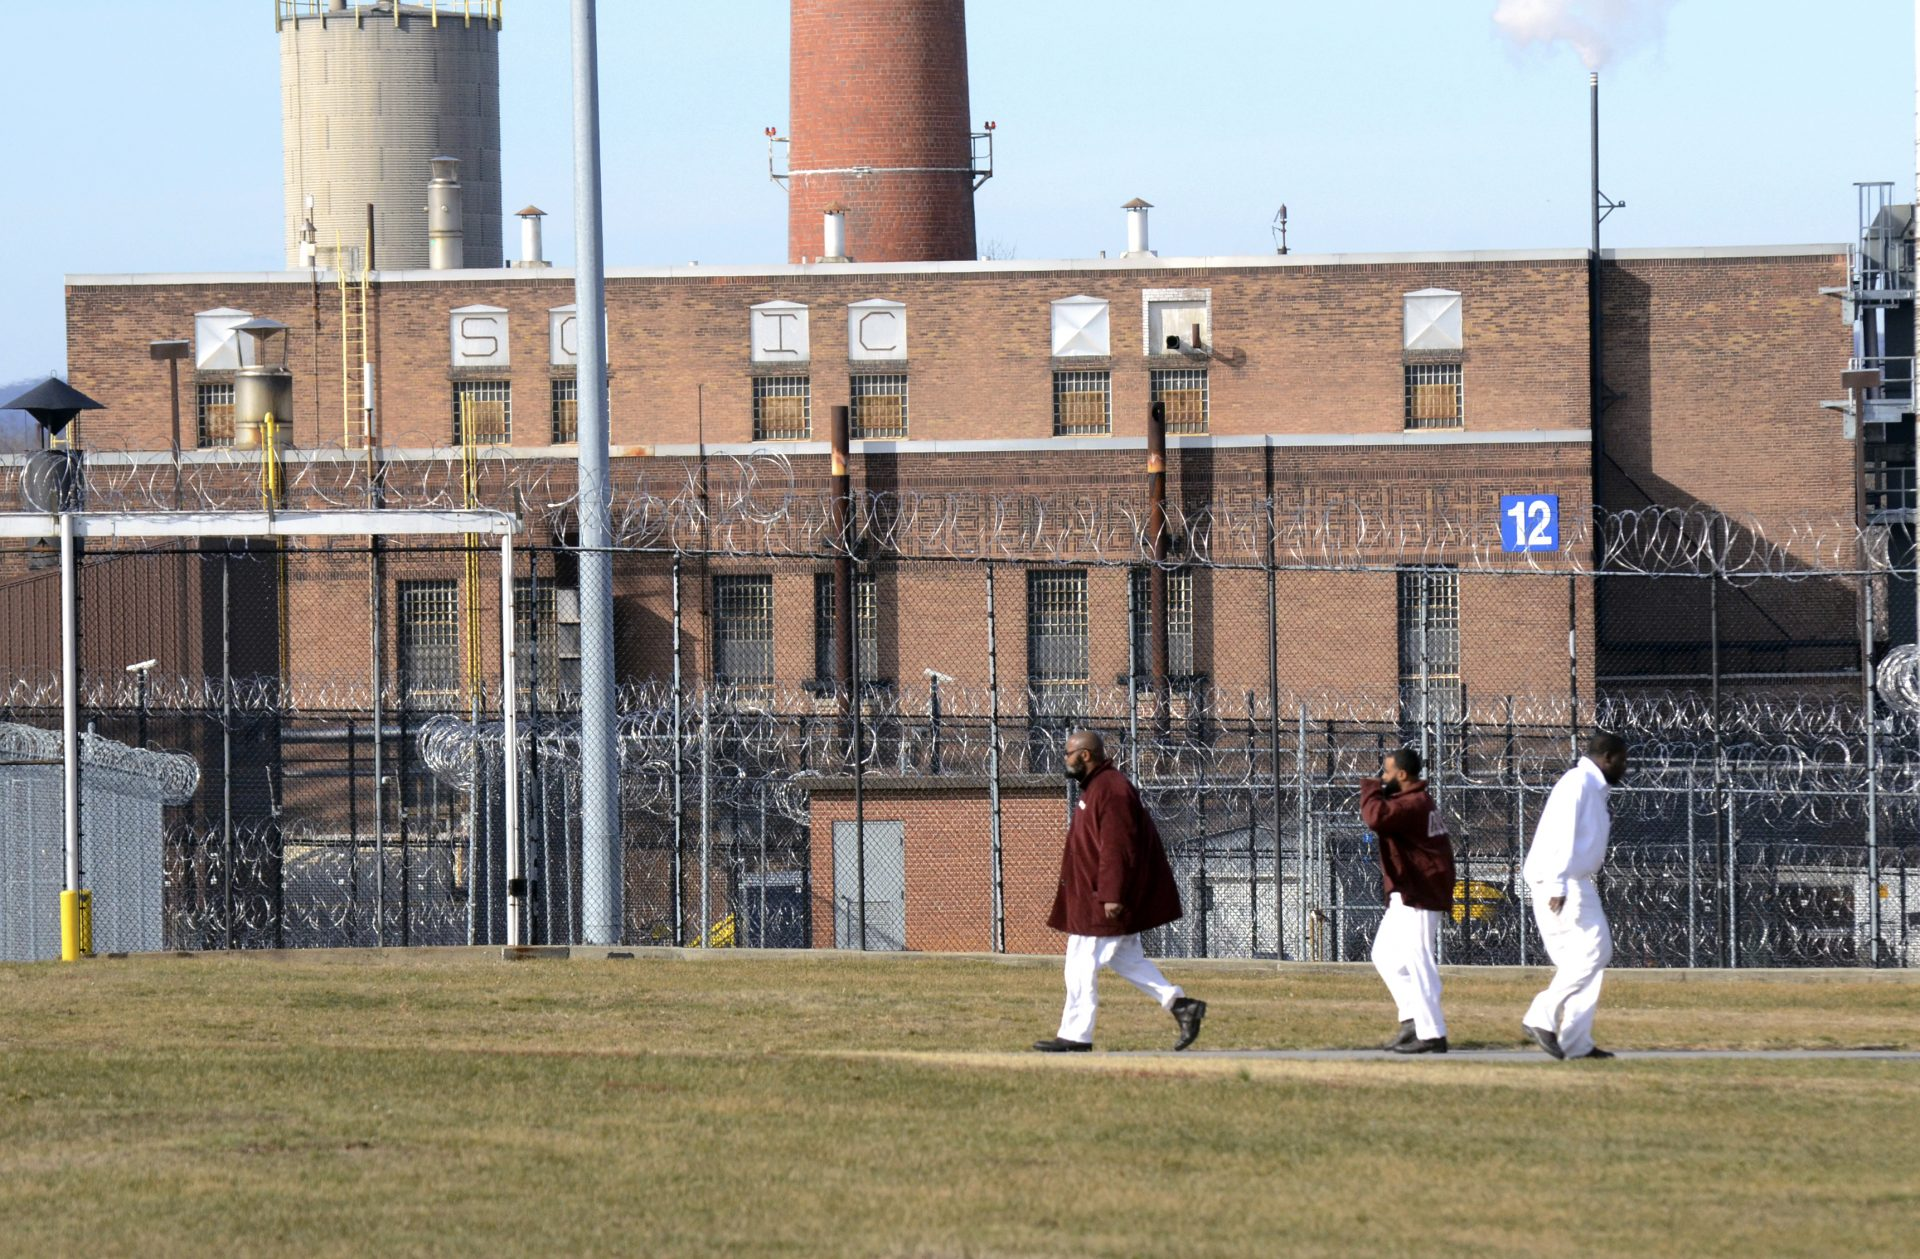 Inmates walk across a yard at the State Correctional Institution at Camp Hill, Pennsylvania, Friday, Jan. 13, 2017, in Camp Hill, Pa.